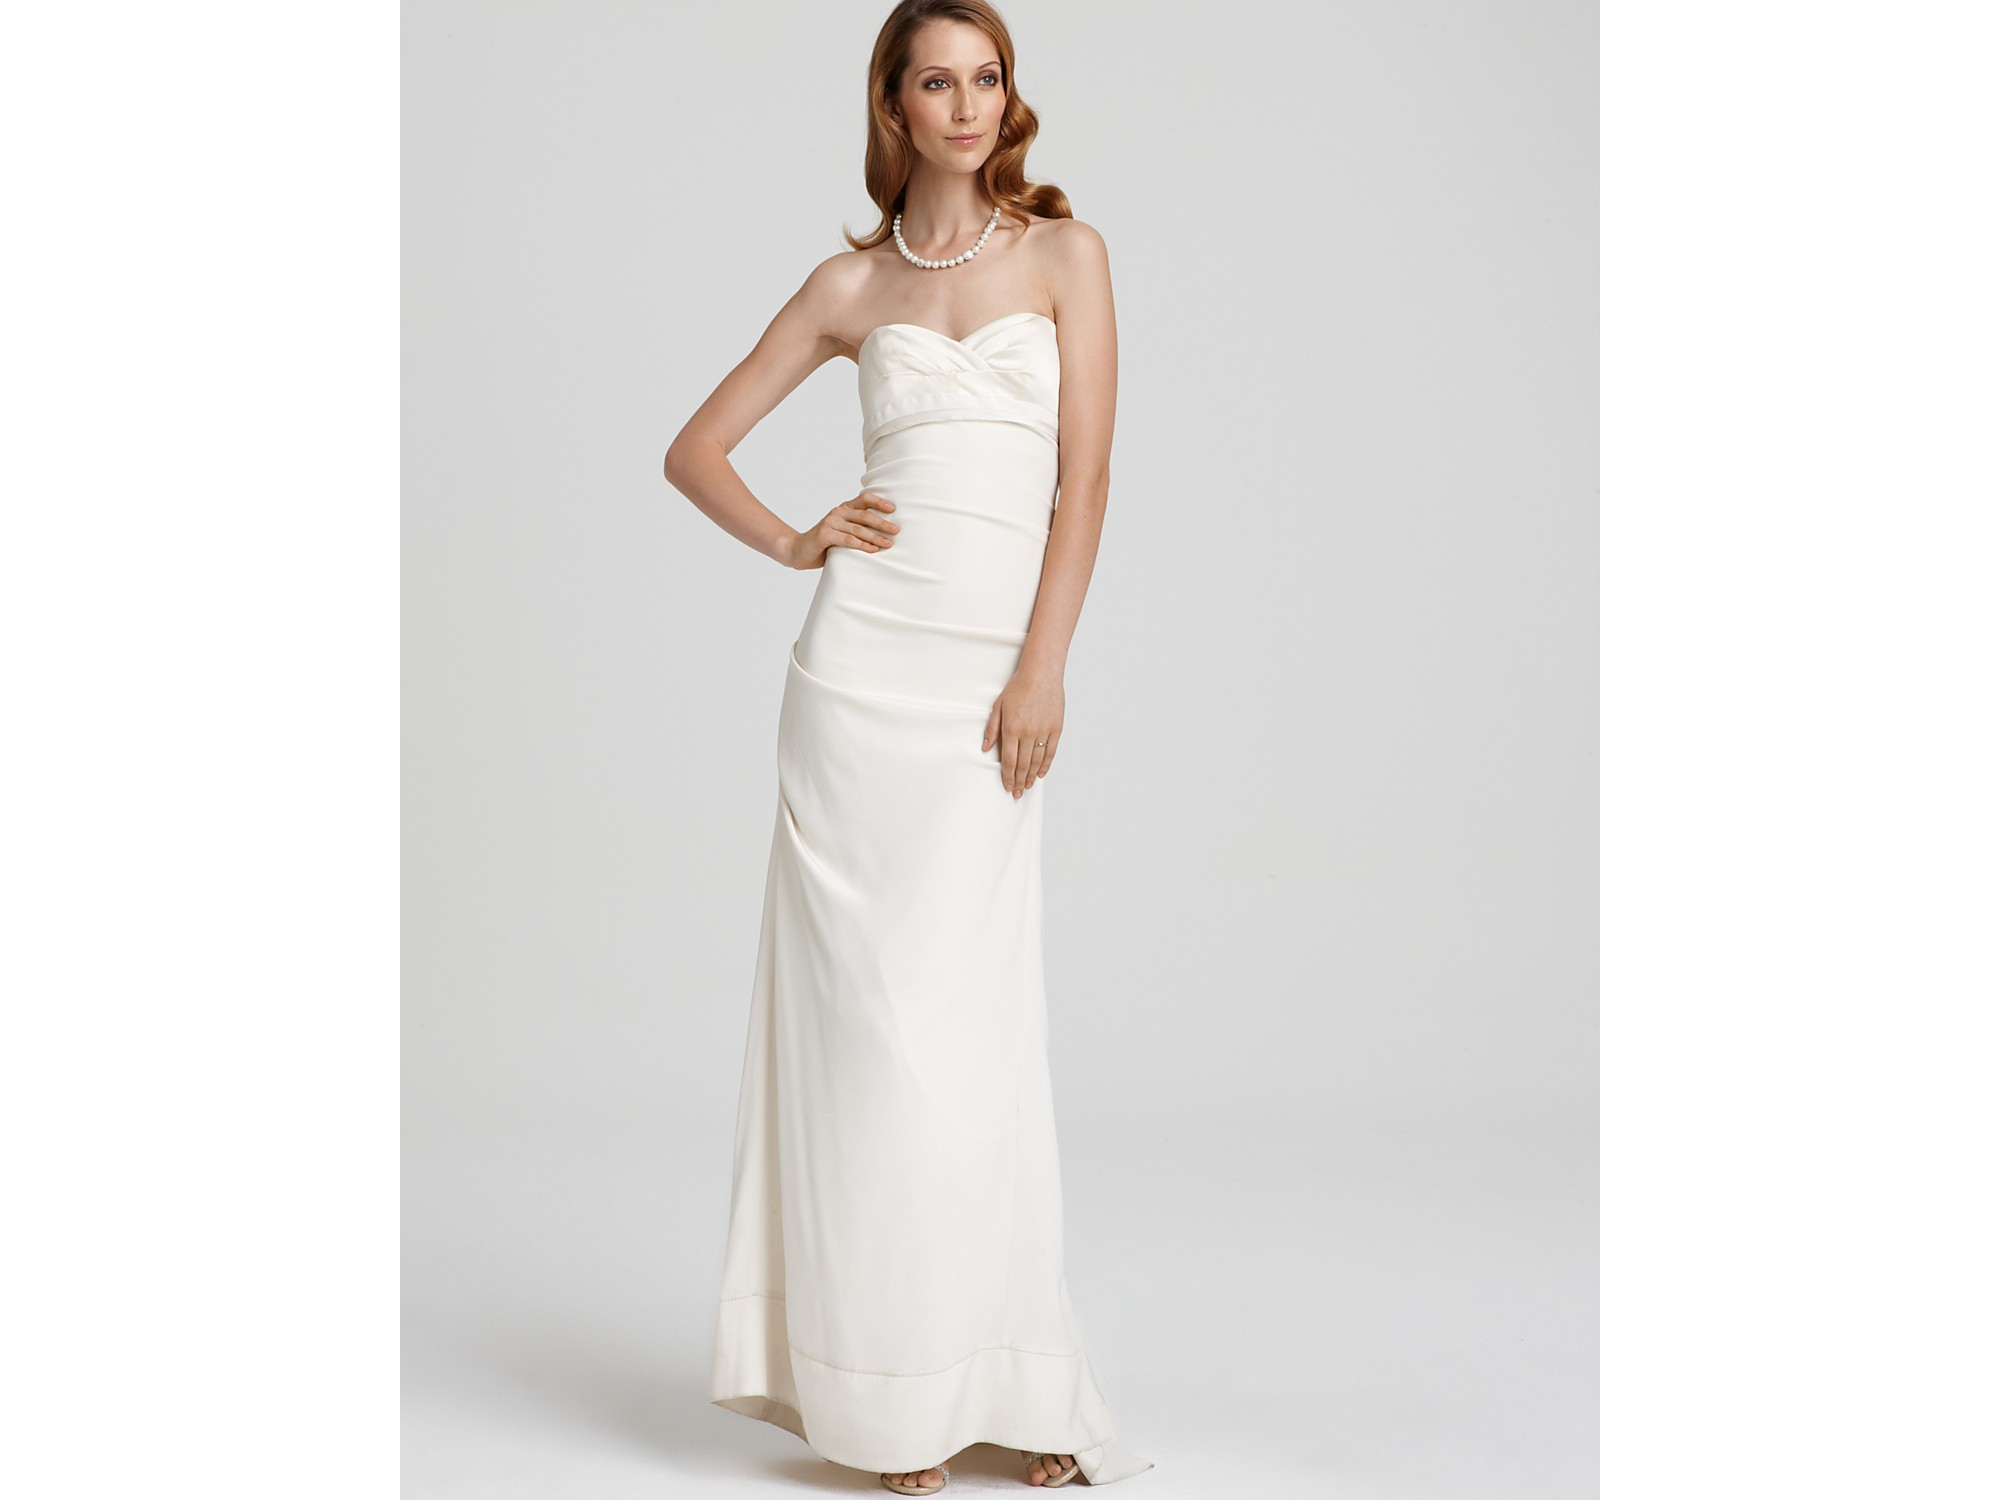 Nicole miller ruched white dress